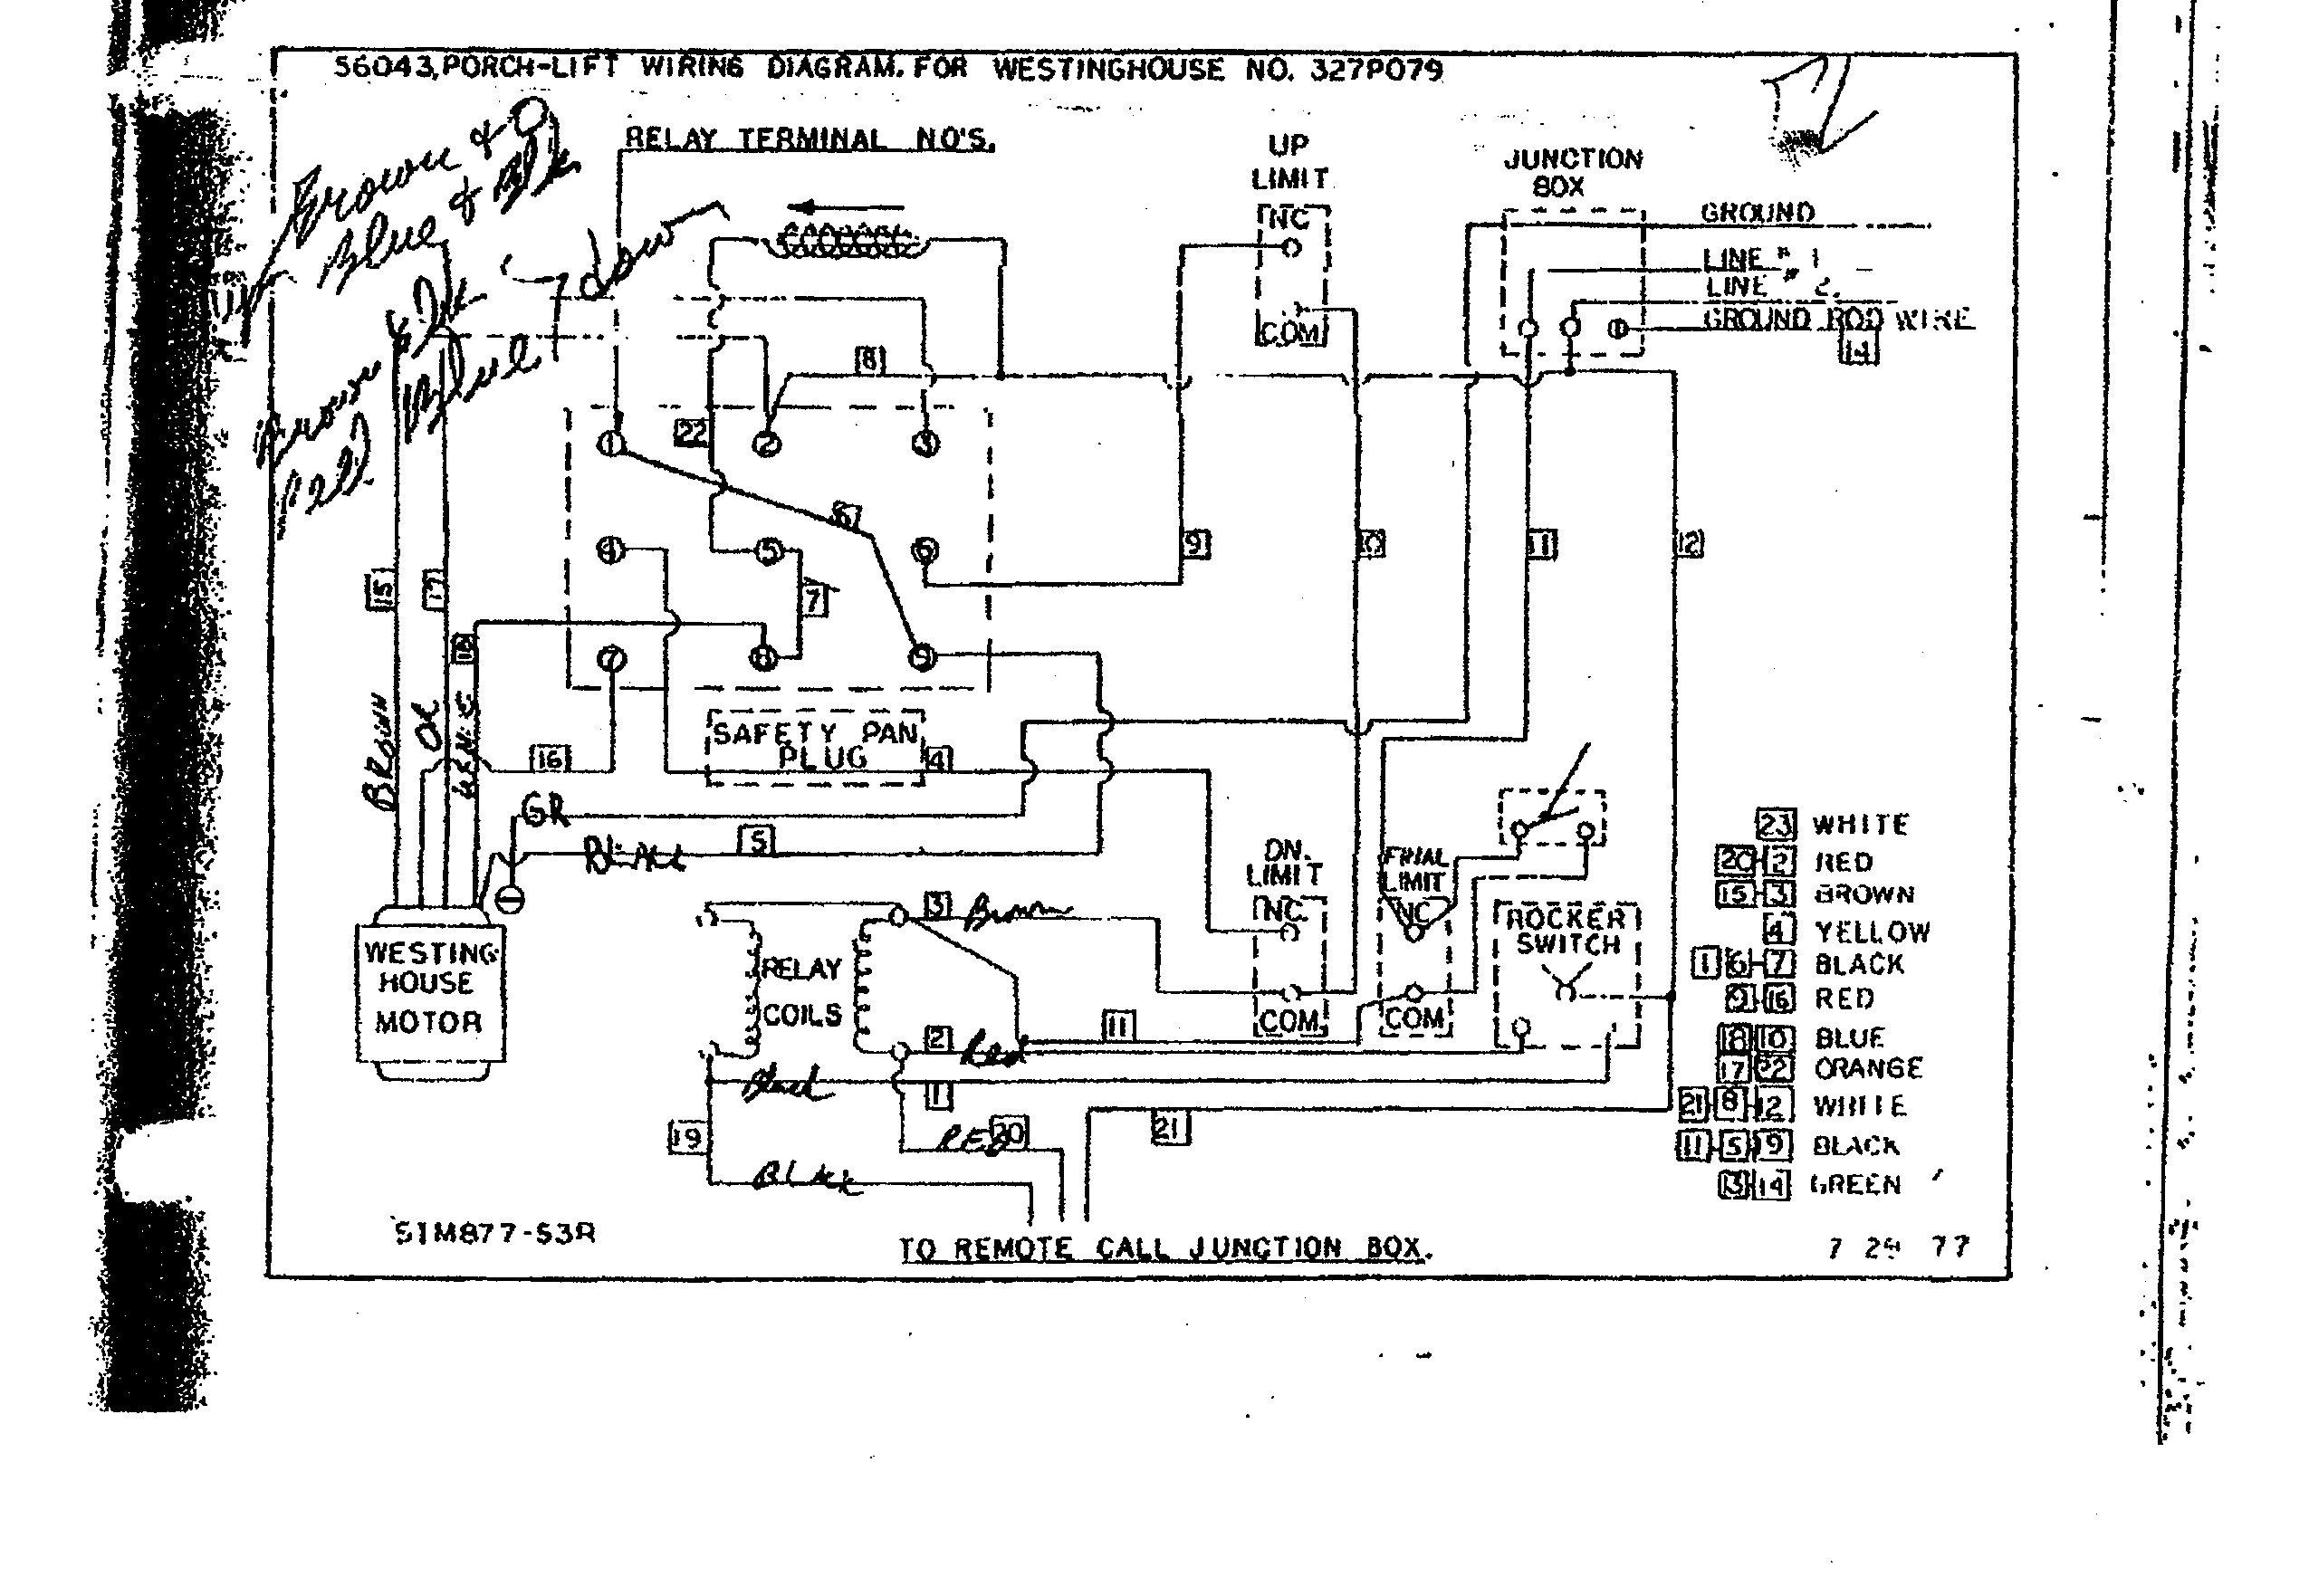 2011 01 04_160748_thyssenkrupp who where can i get help with westinghouse motor wiring? westinghouse ac motor wiring diagram at creativeand.co